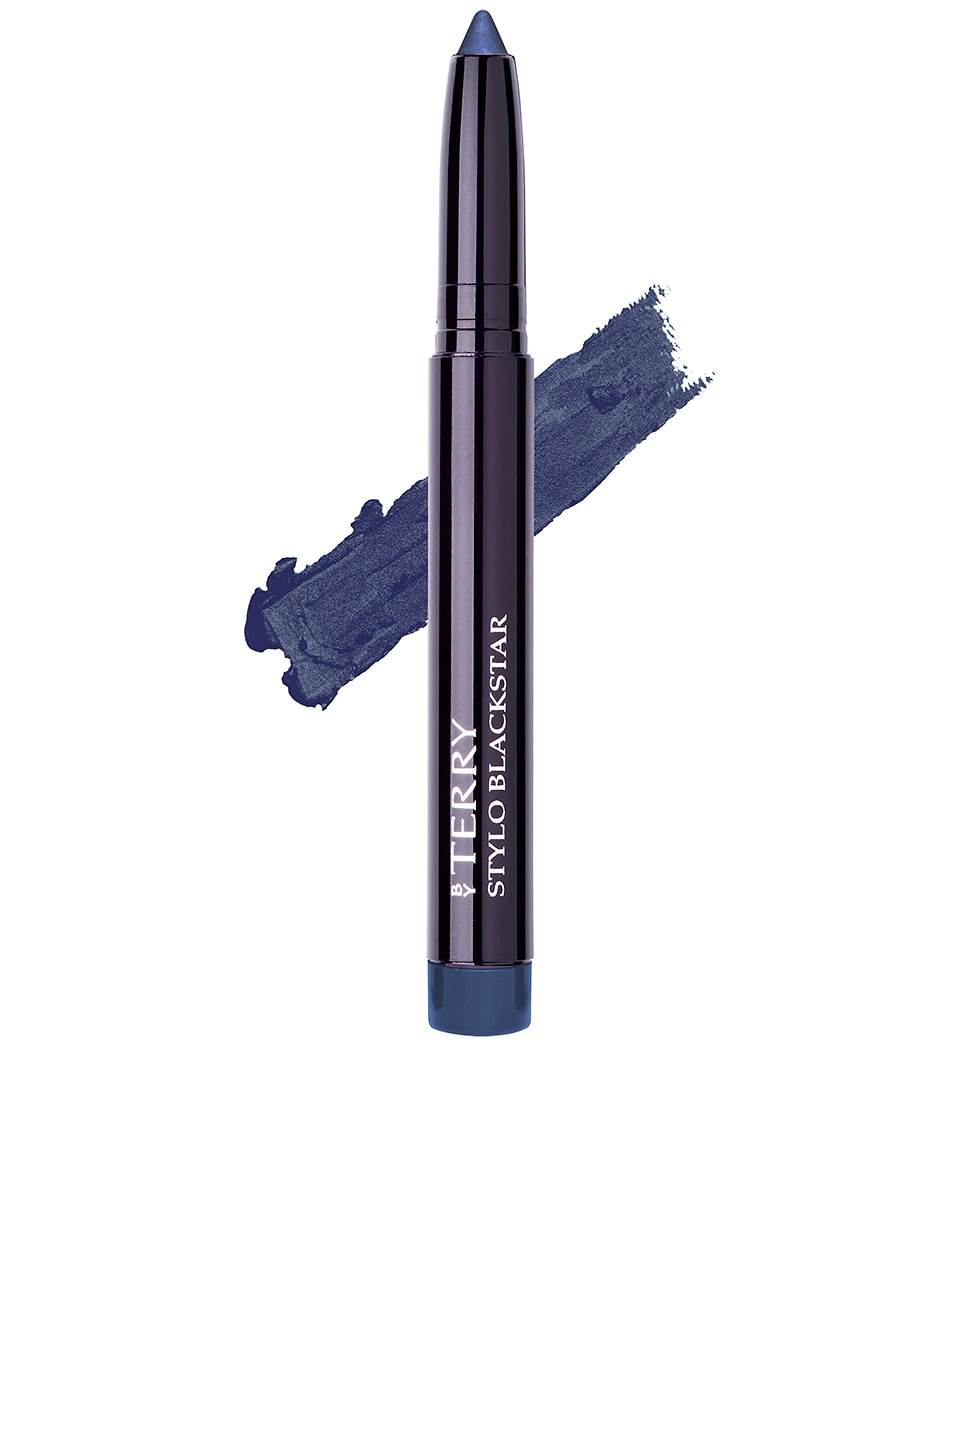 By Terry Stylo Blackstar 3-in-1 Eyeliner, Eye Shadow, Eye Contour in Midnight Ombre